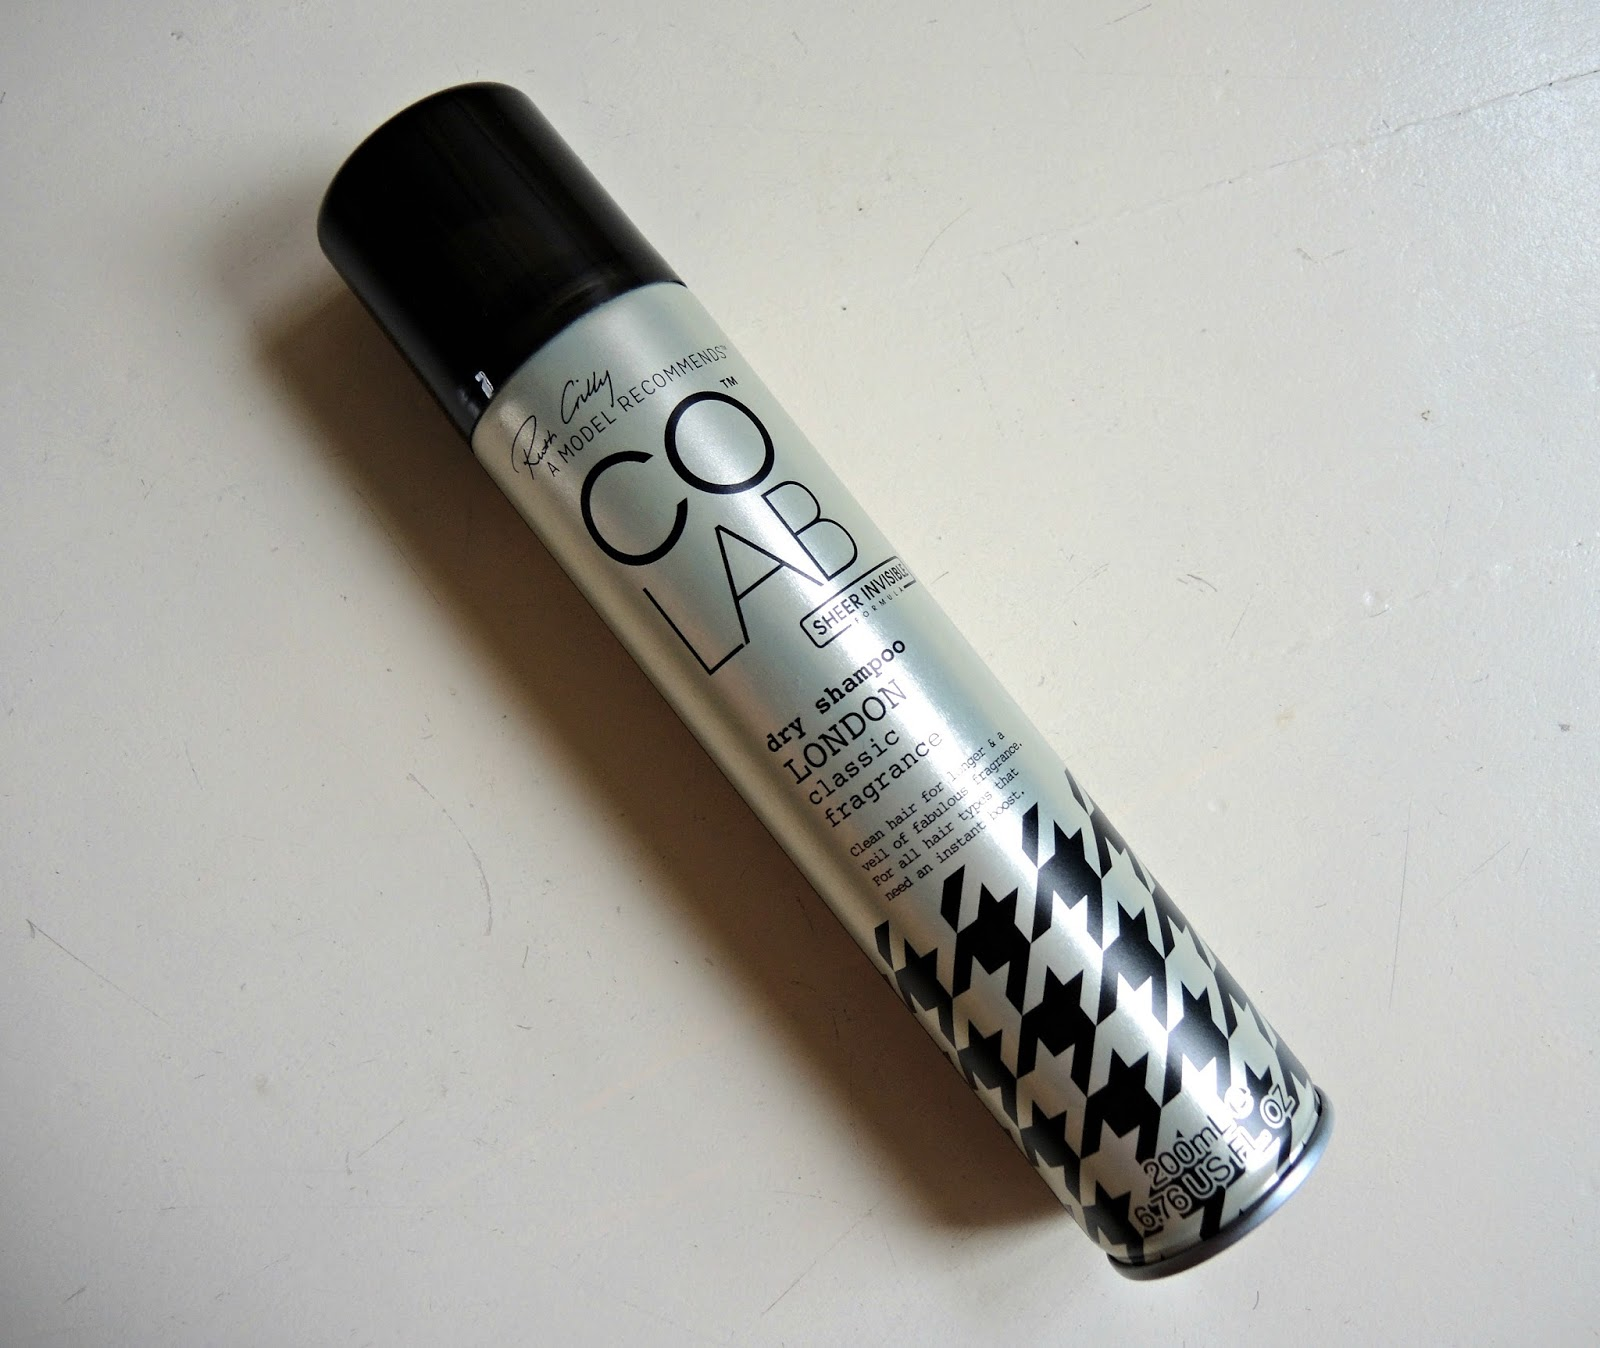 COLAB Dry Shampoo London Review